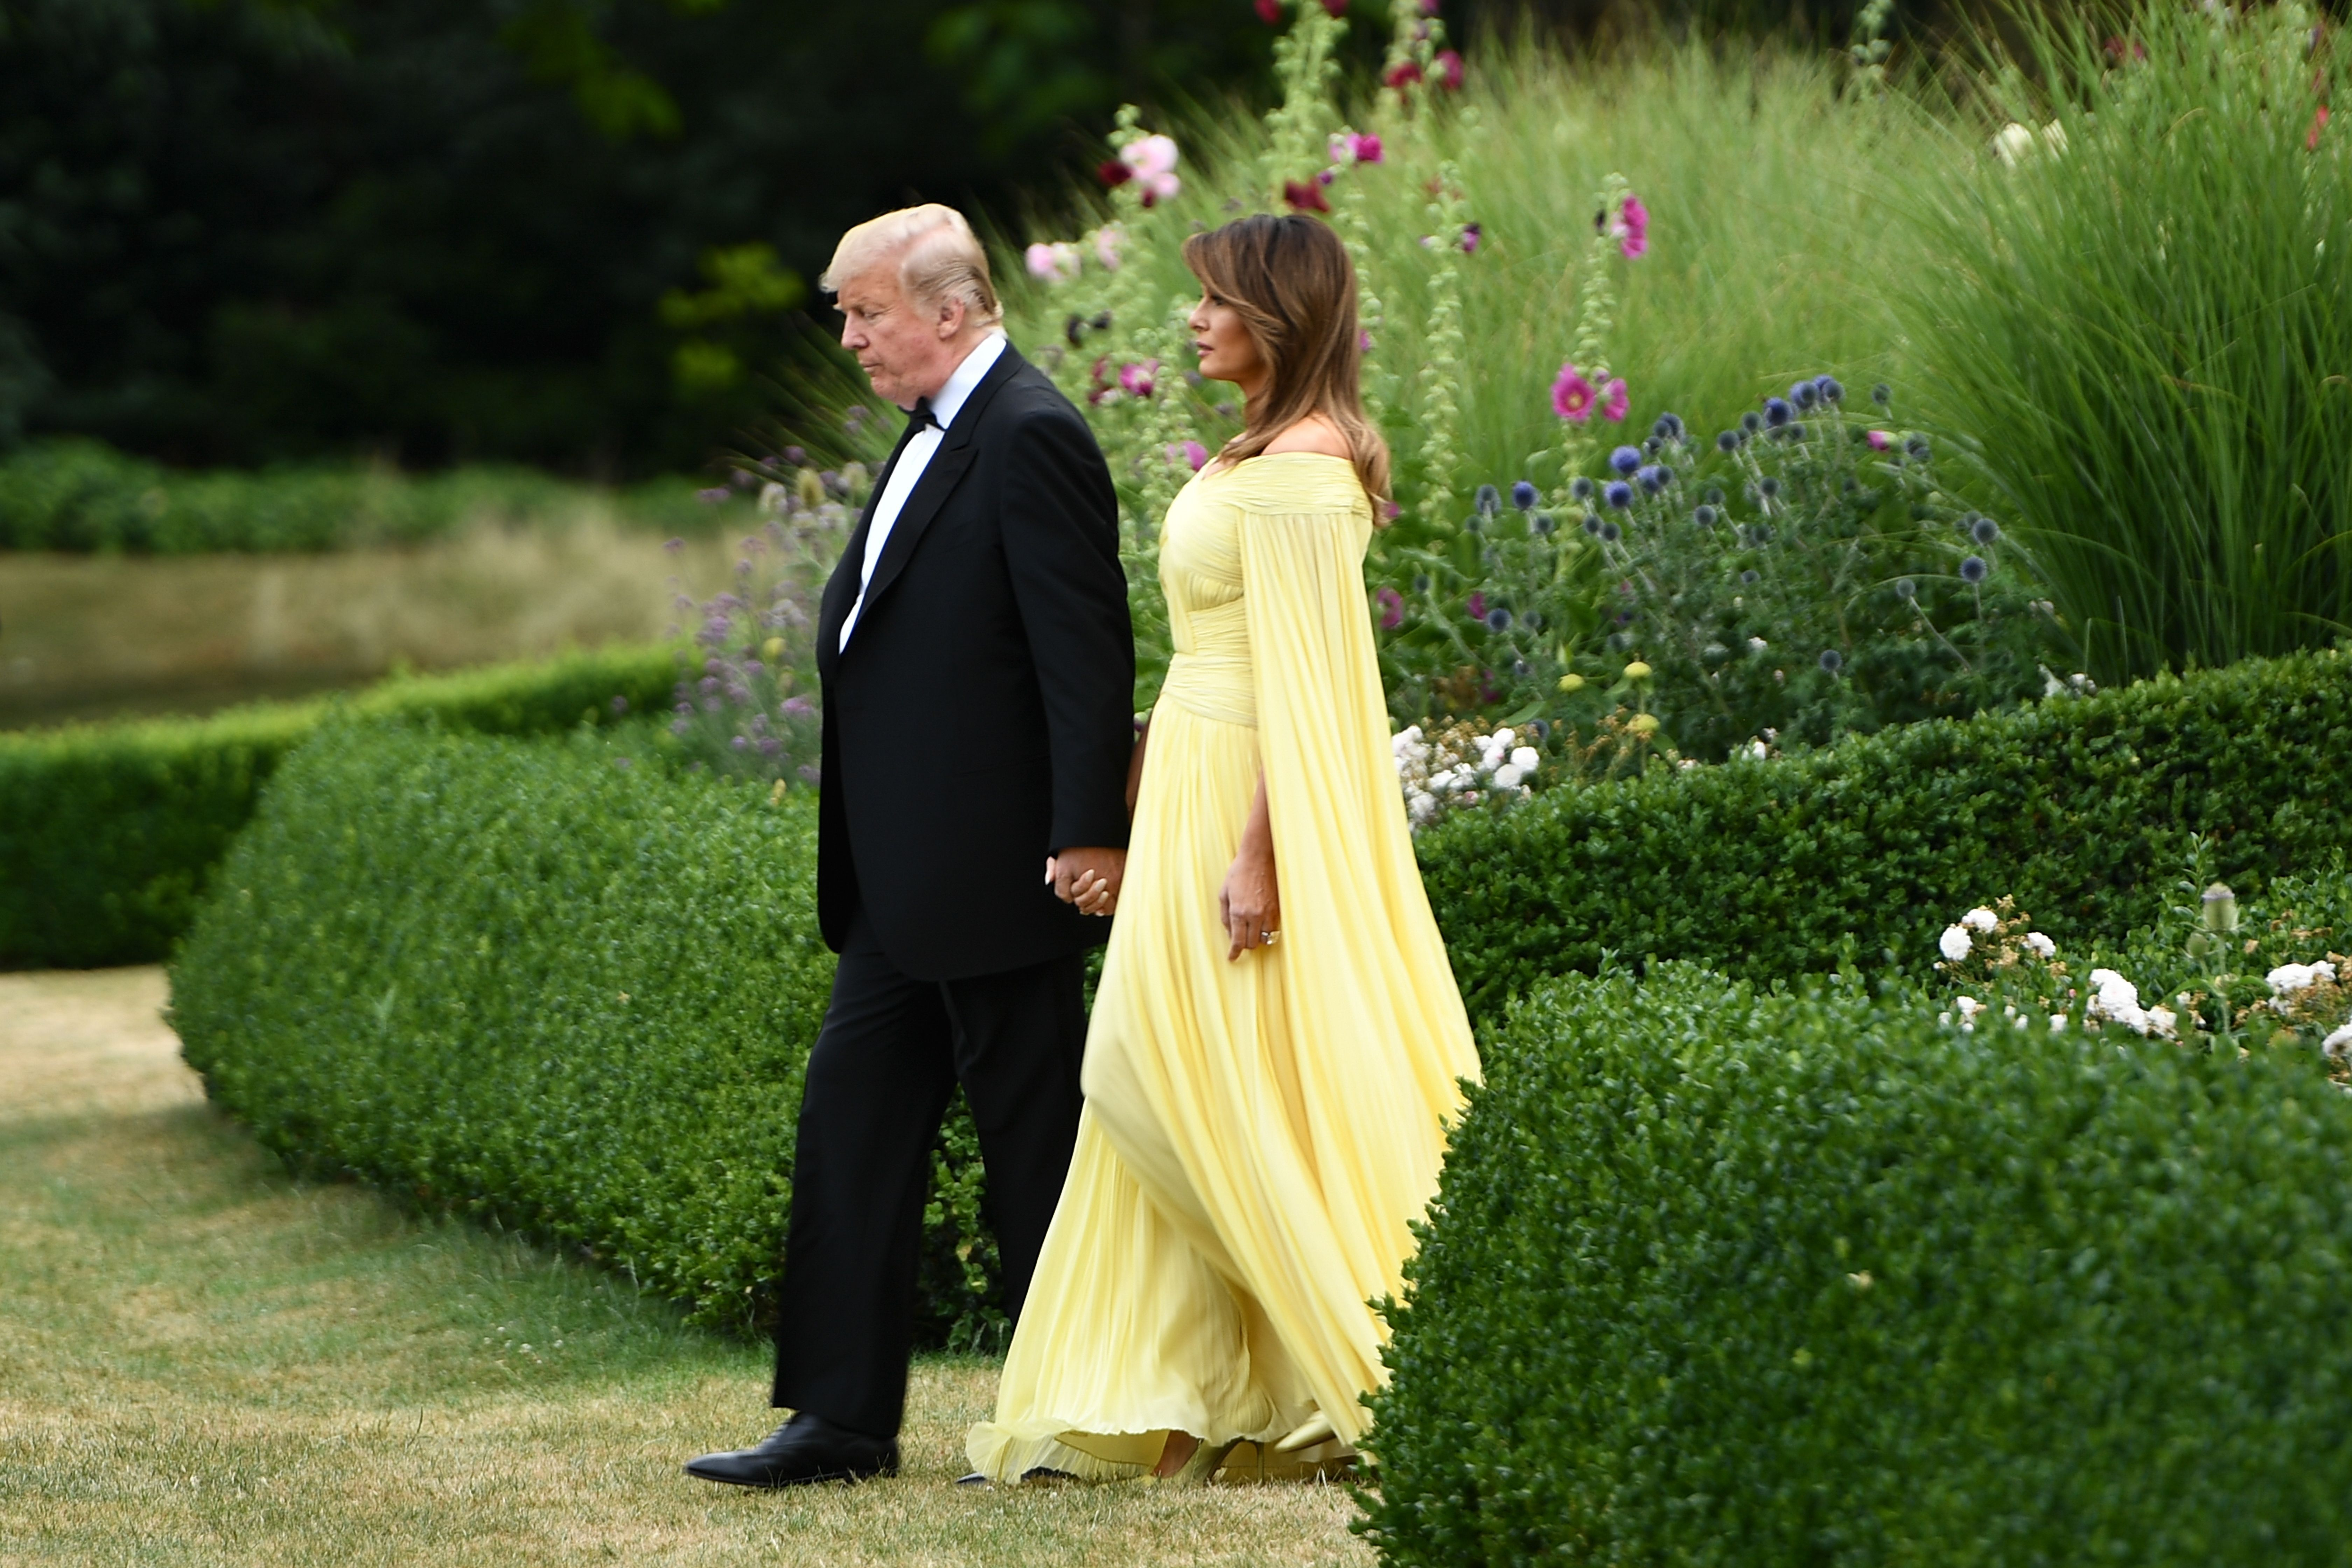 Trump and Melania depart Winfield House in London